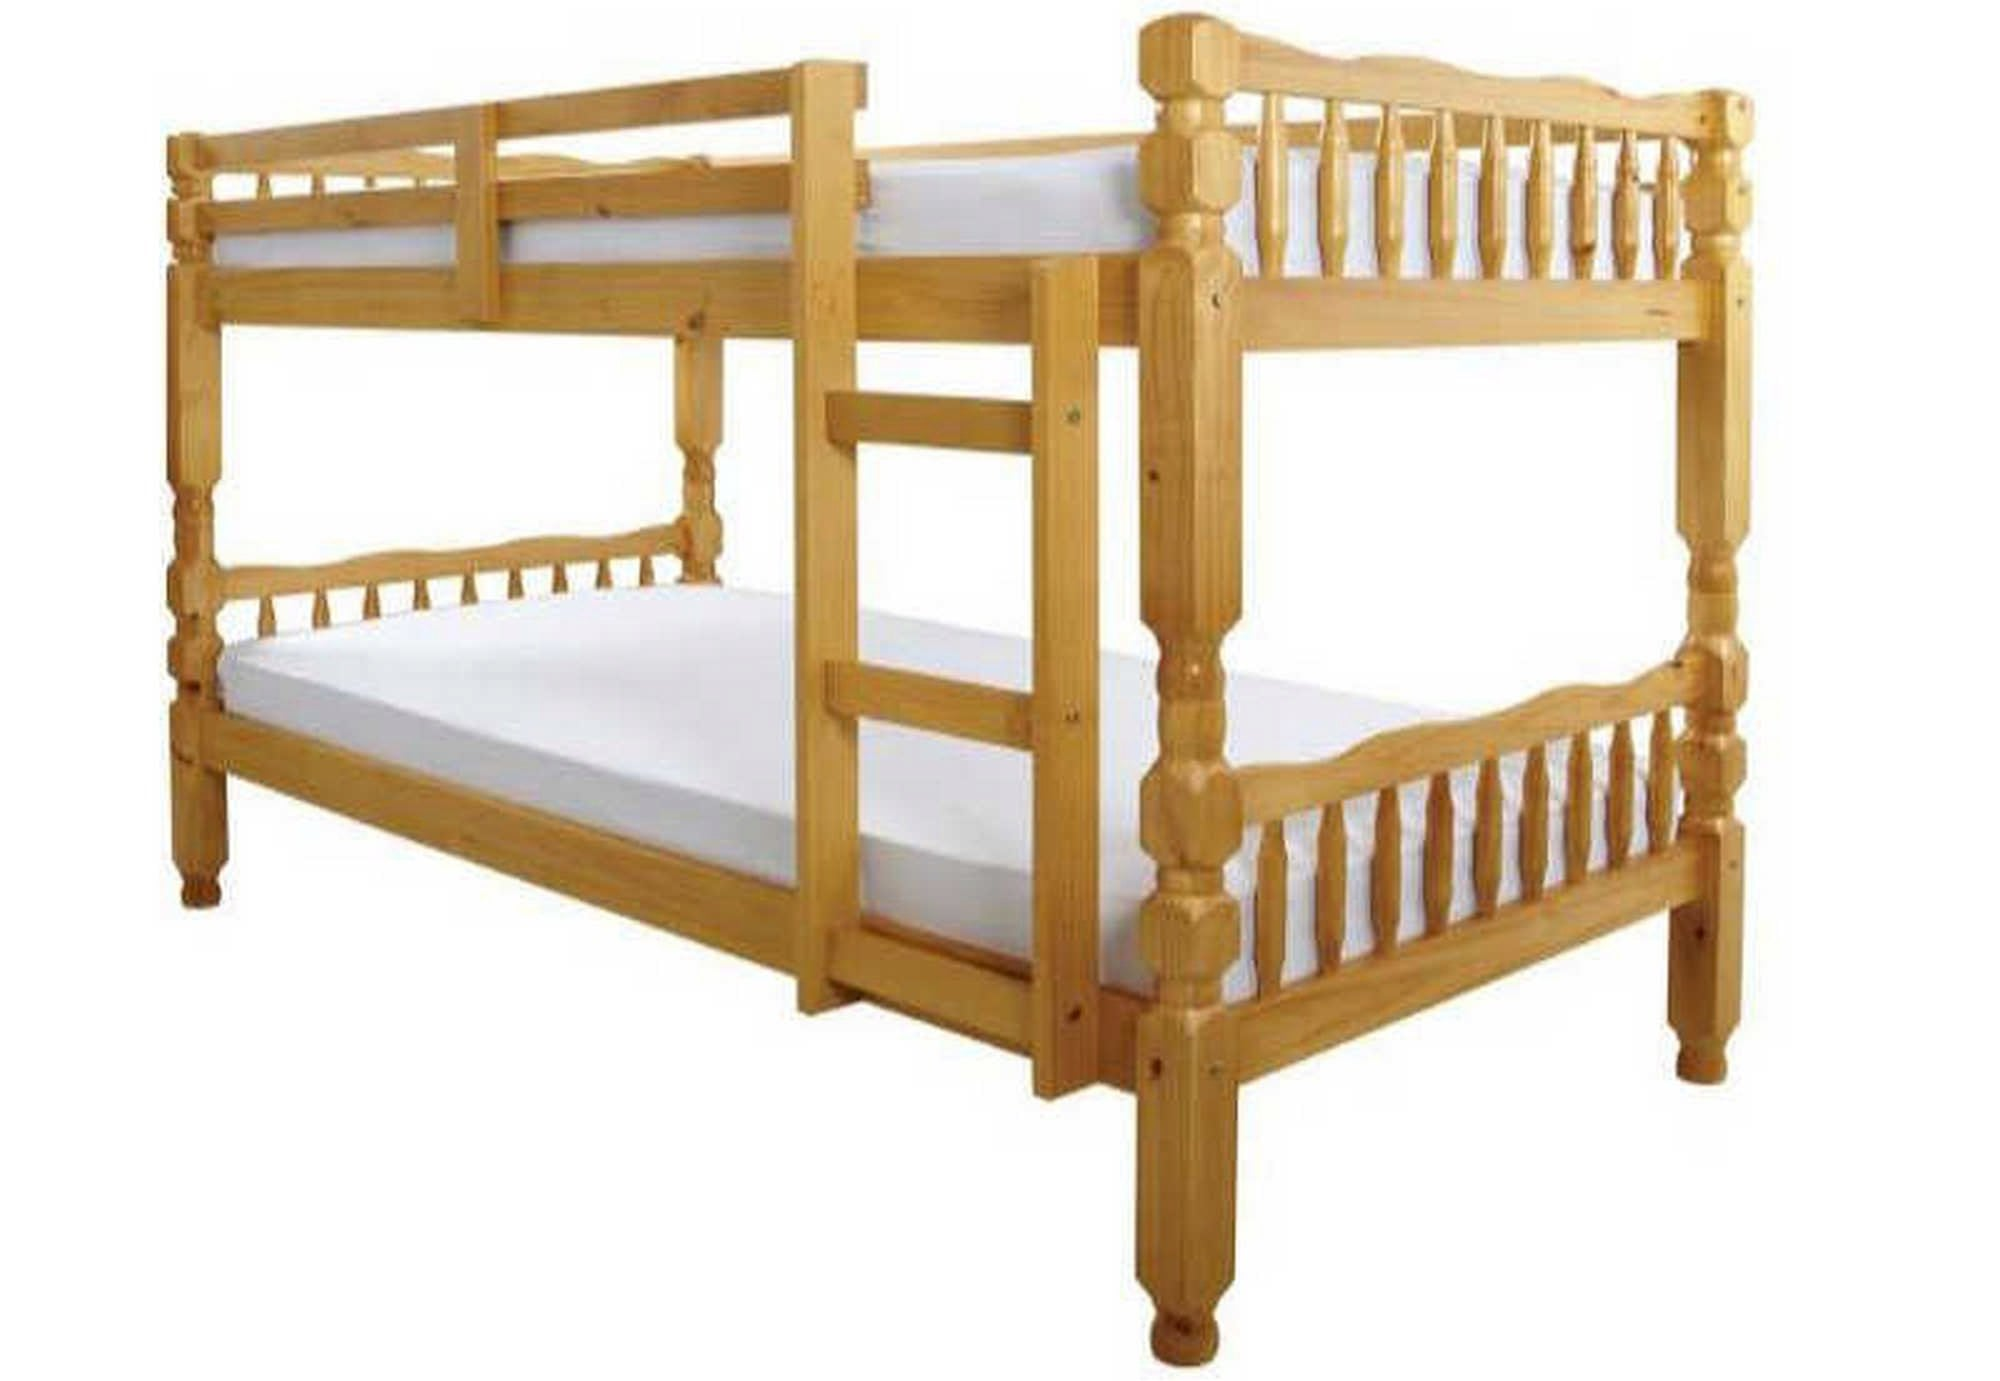 Picture of: Europa Beds Europa 2ft6 X 5ft Short Small Solid Pine Bunk Bed External Size 92cm X 165cm Bunk Beds From Beds 4 Less Uk